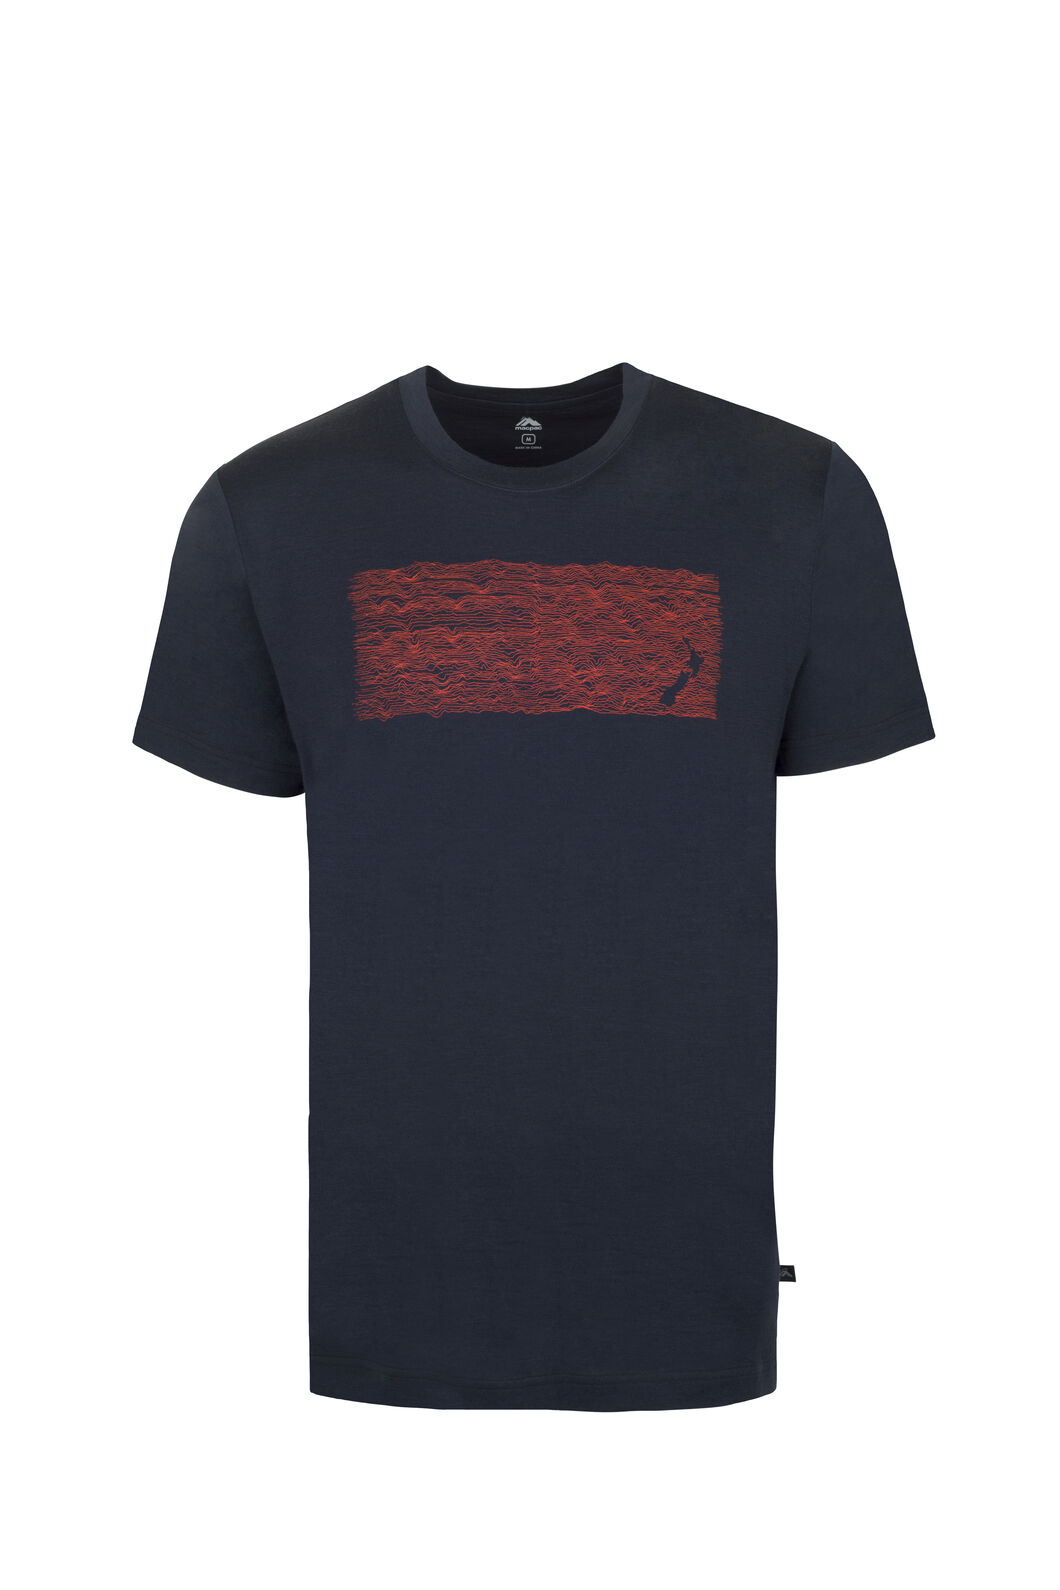 Macpac Map Merino 180 Tee - Men's, Salute, hi-res